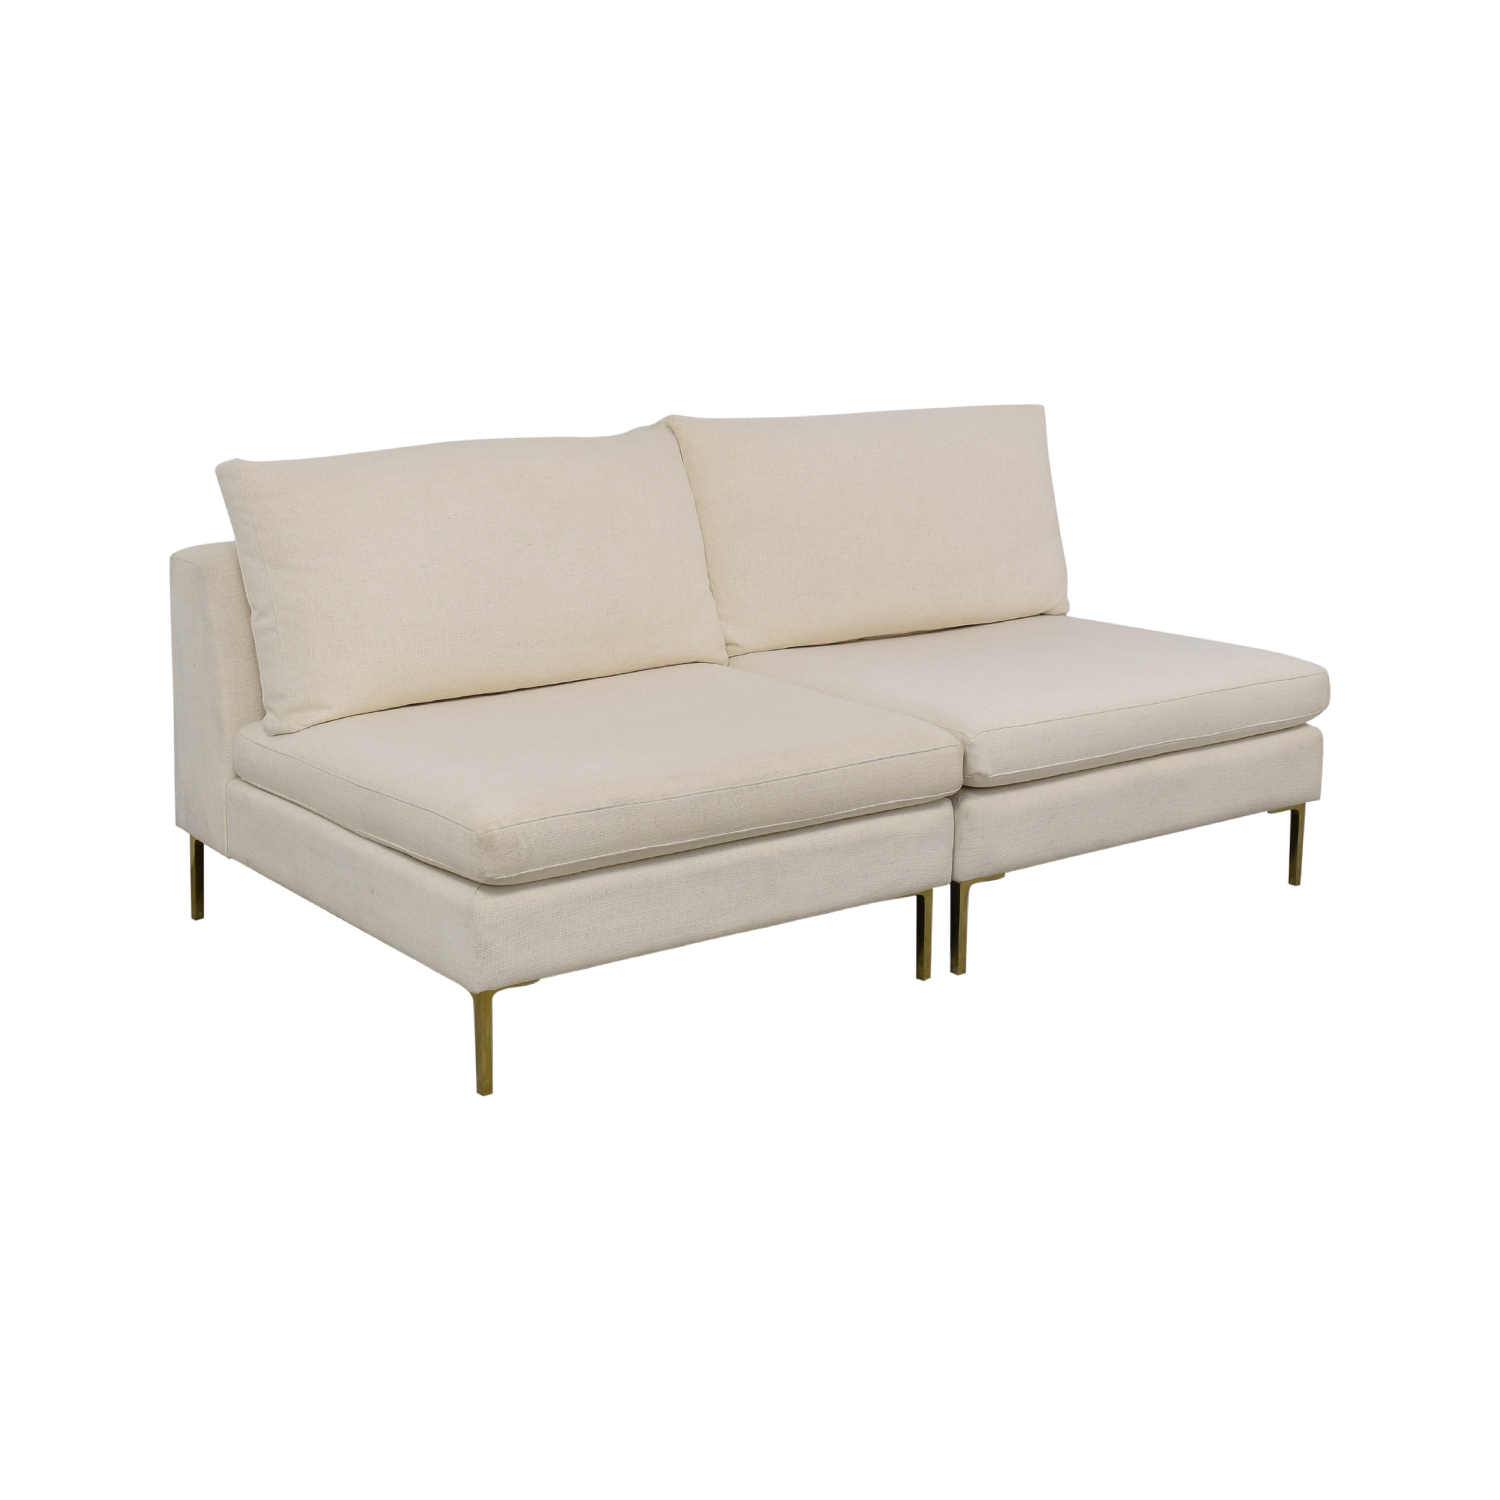 Anthropologie Anthropologie Armless Sofa Chairs